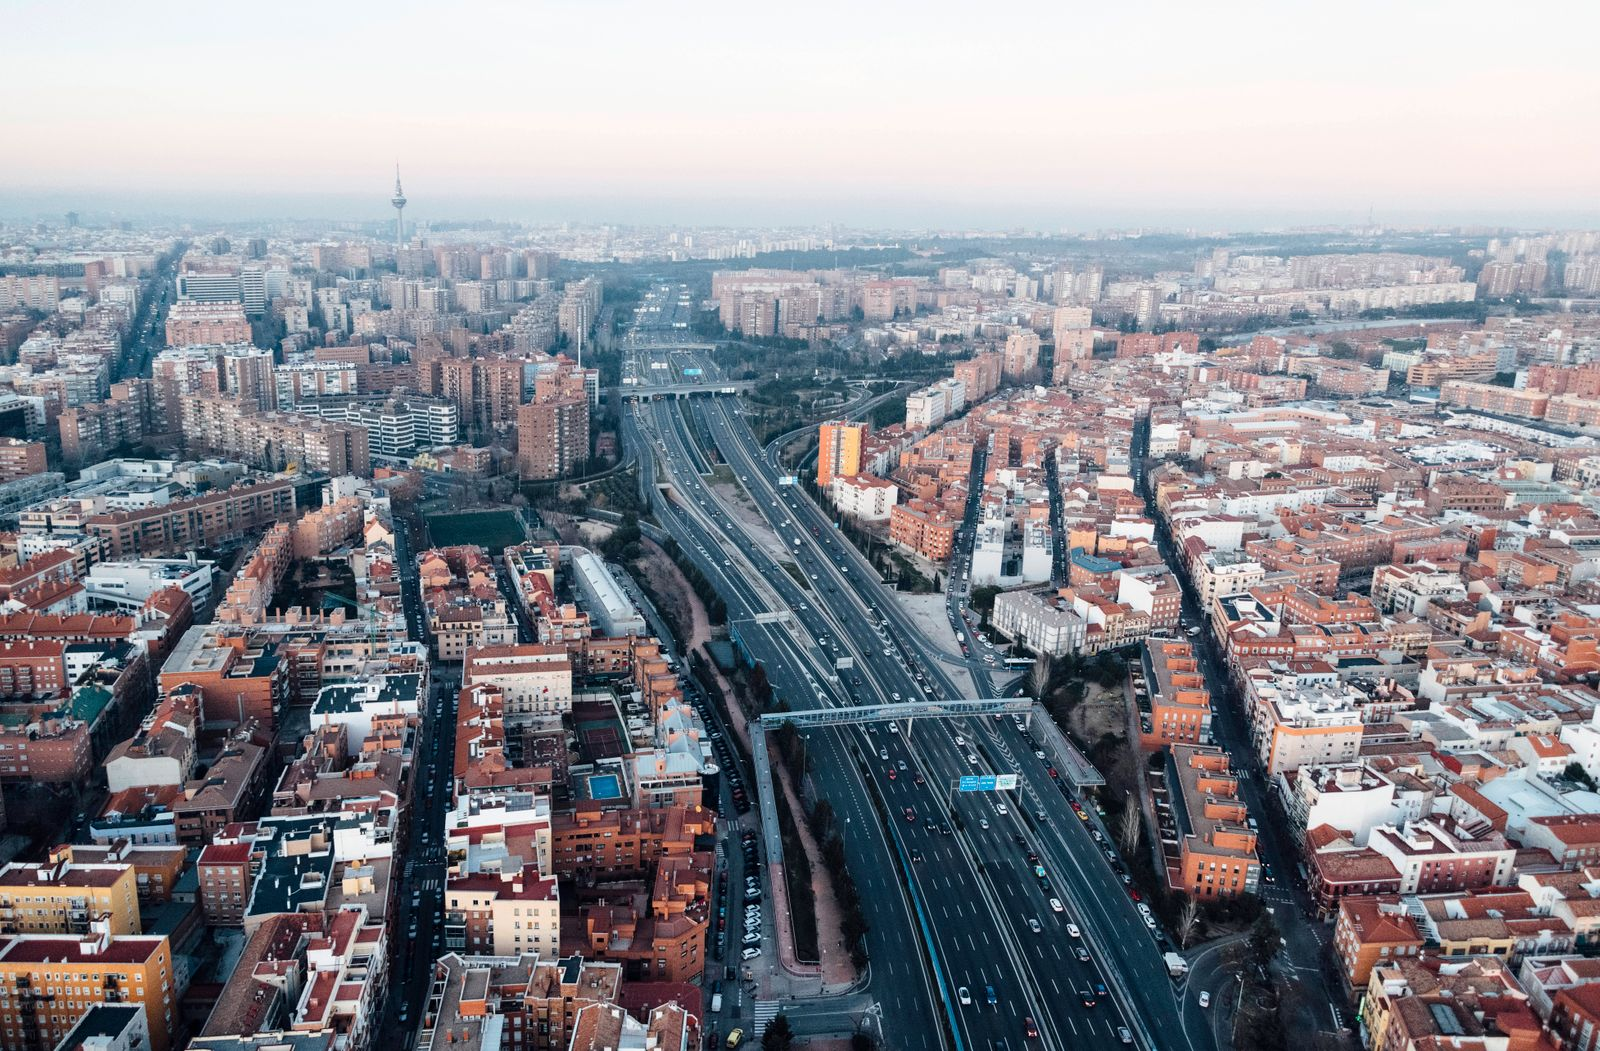 Spain, Madrid, Helicopter view of multiple lane highways in middle of city JCMF00513